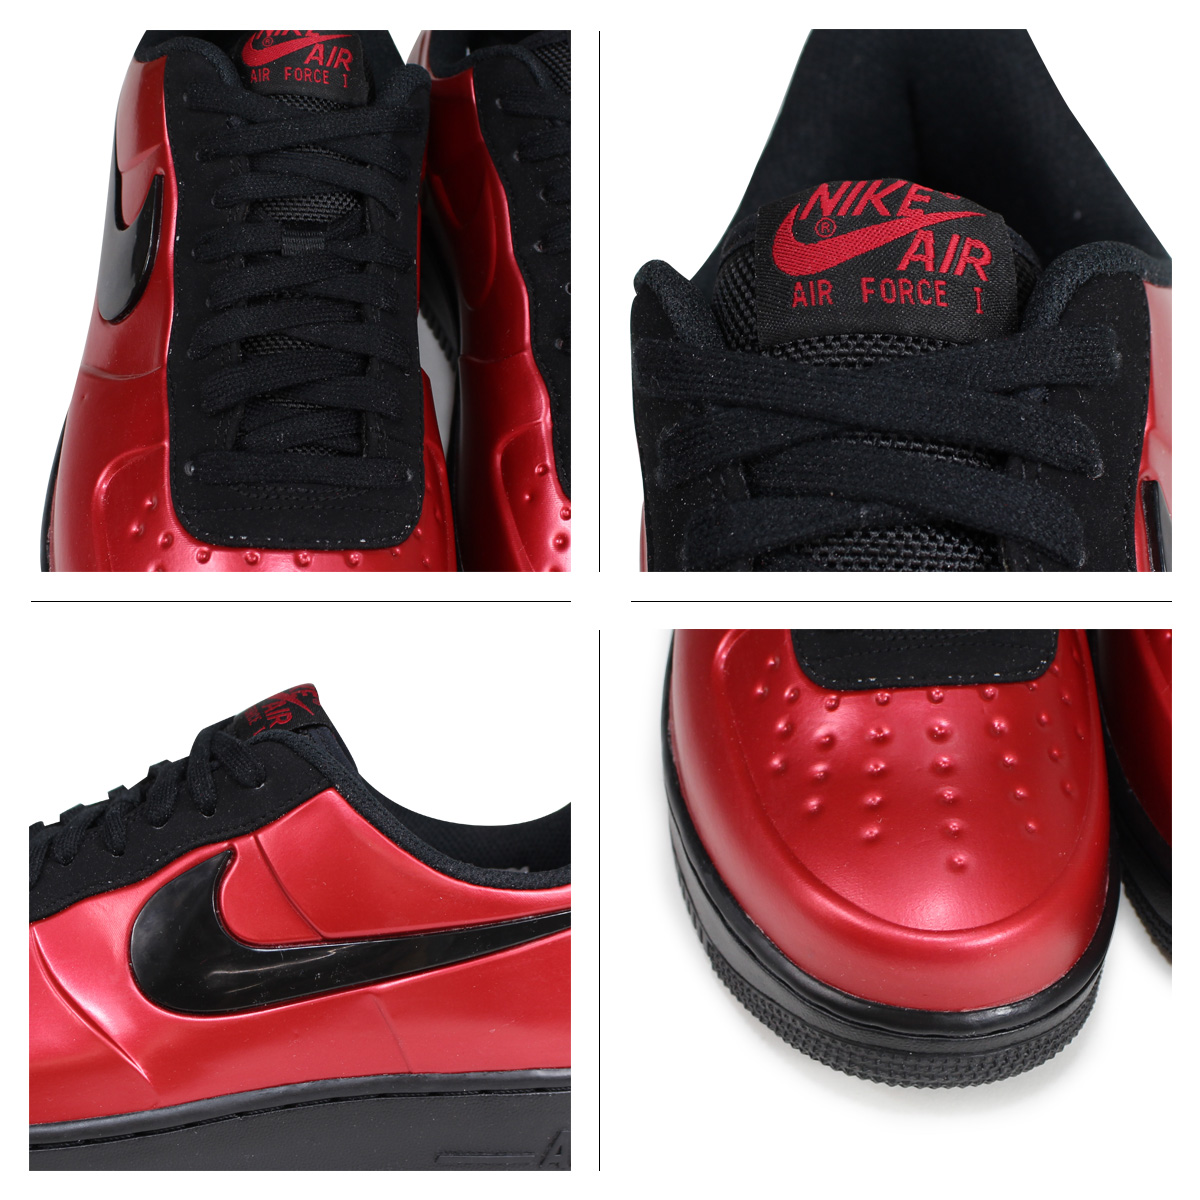 a71833f271c5 NIKE AIR FORCE 1 FOAMPOSITE PRO CUP AF1 Nike air force 1 sneakers men AJ3664-601  red  load planned Shinnyu load in reservation product 7 19 containing